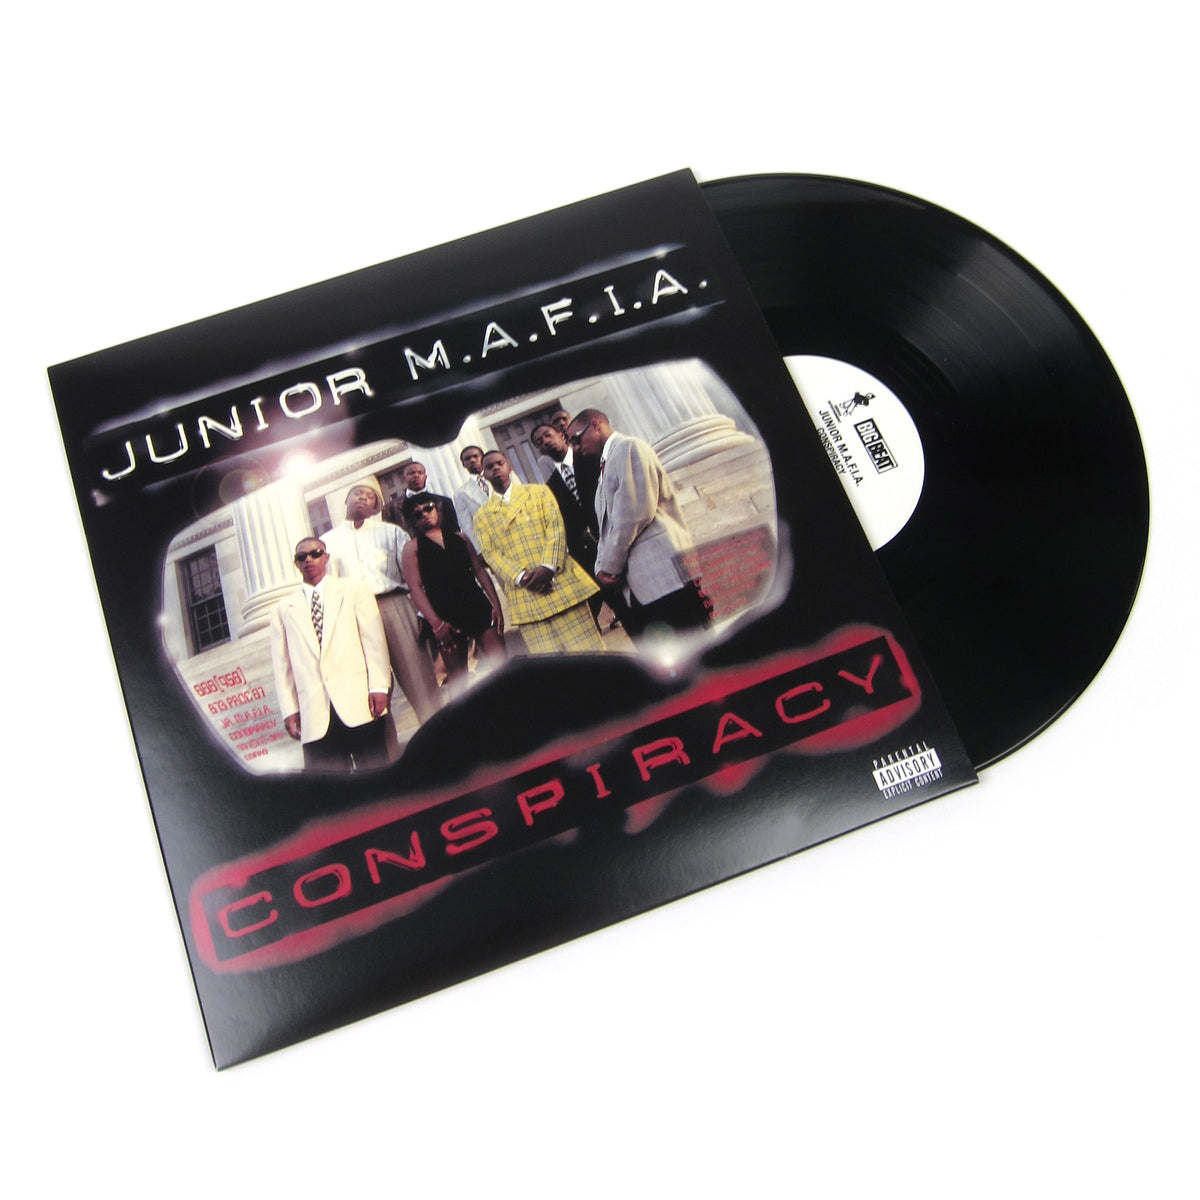 Junior M.A.F.I.A.: Conspiracy Vinyl 2LP